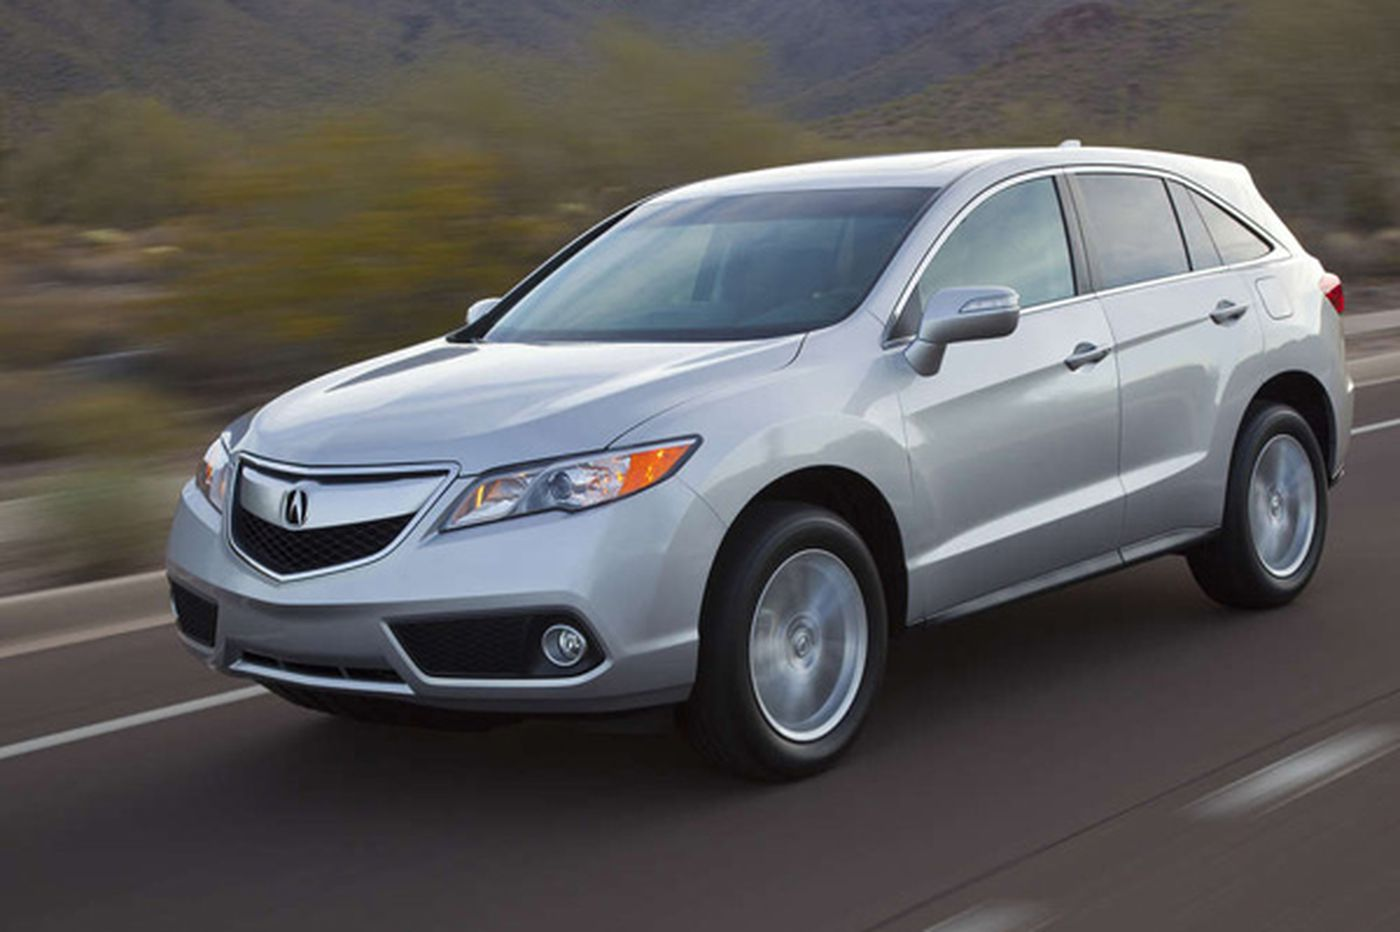 Acura RDX ride gets even smoother